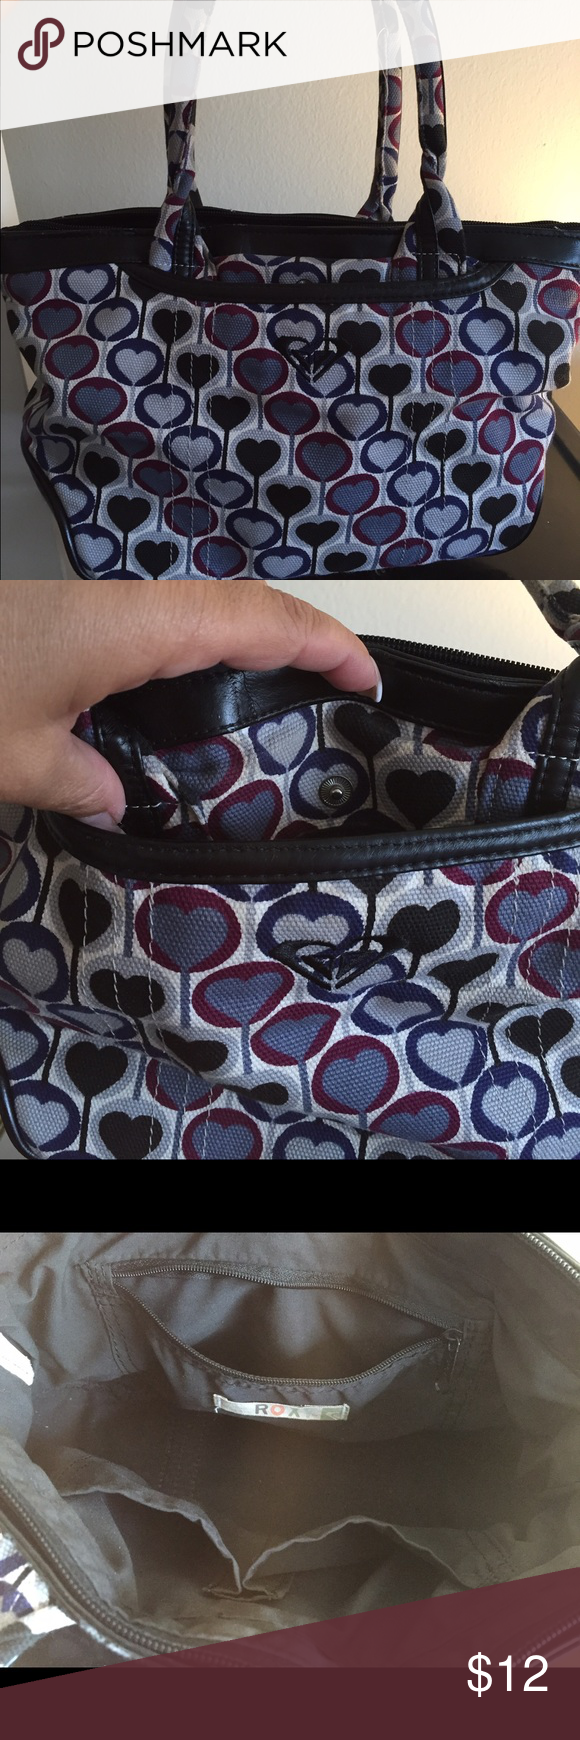 ROXY purse Excellent condition Bags Totes